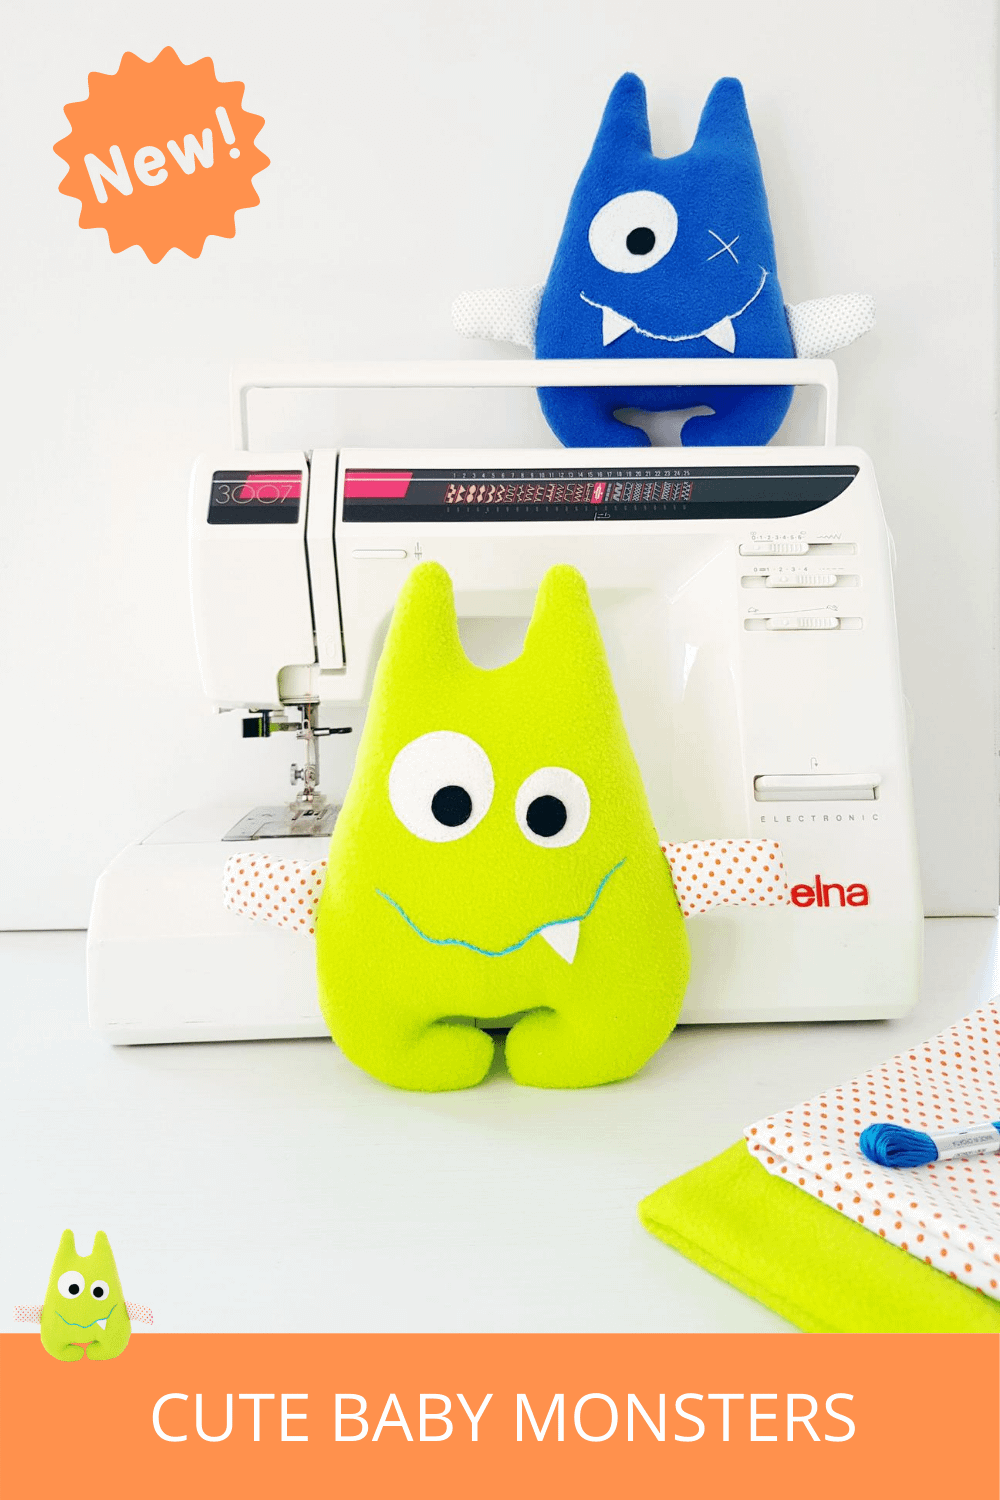 Cute baby monsters sewing pattern for beginners